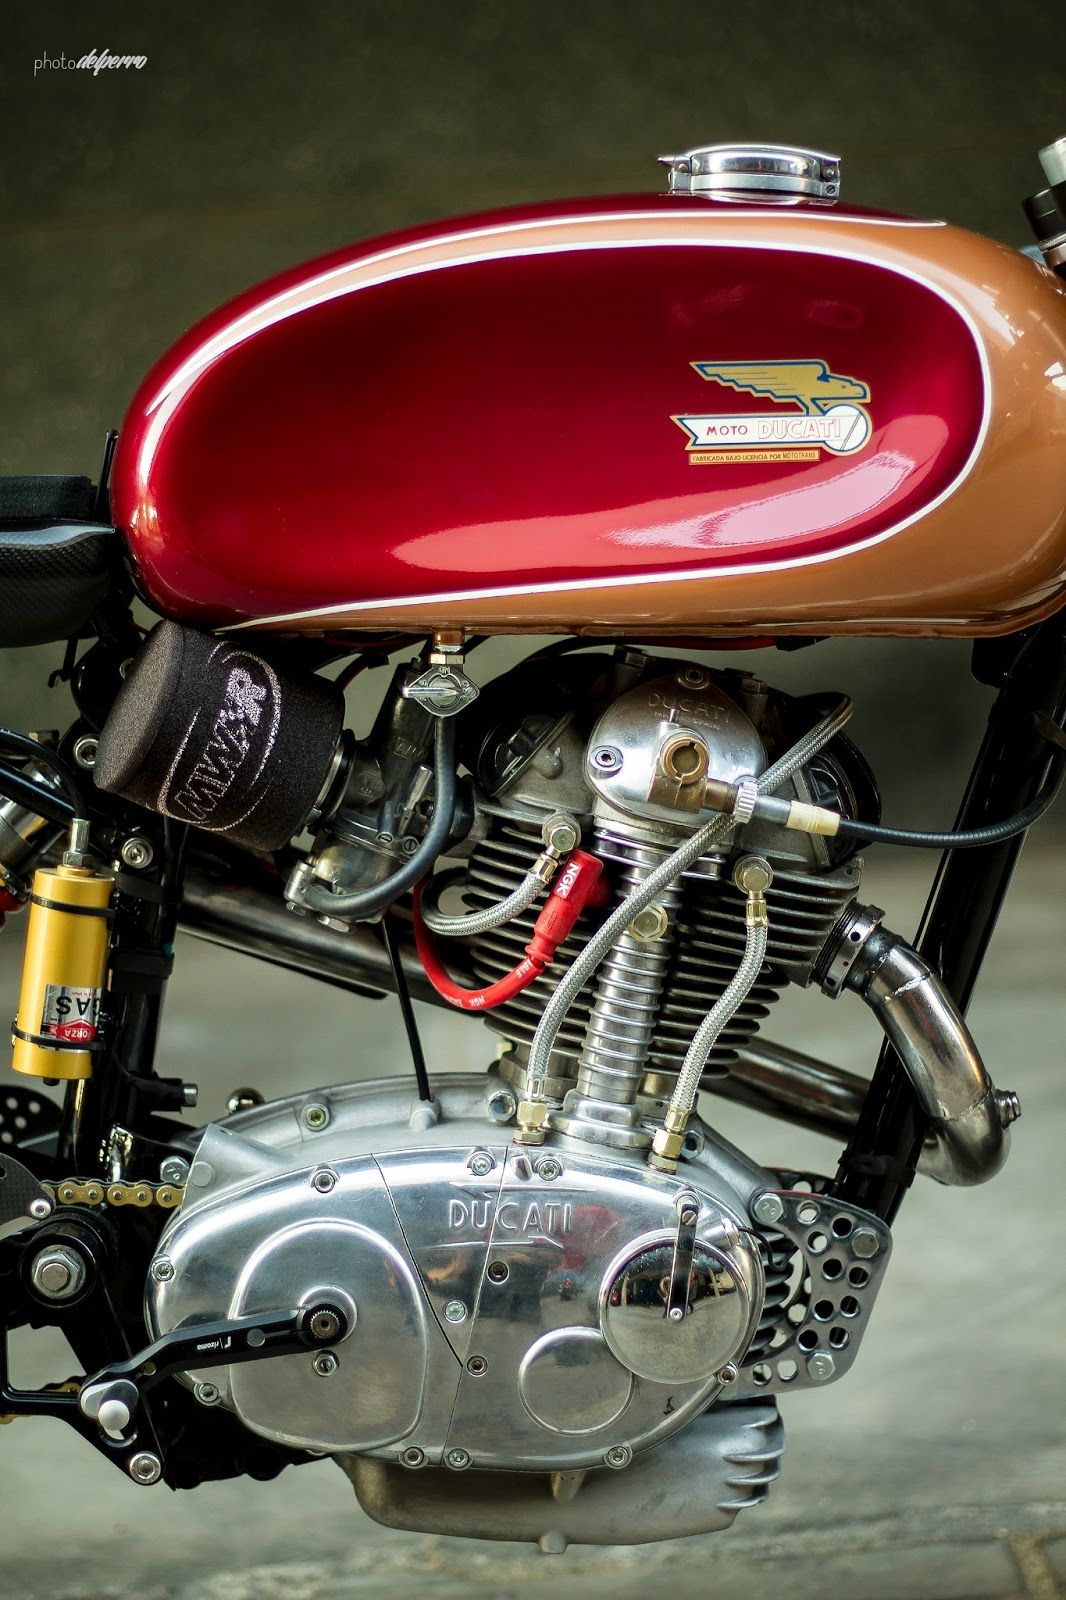 Vintage Ducati... http://www.shipyourcarnow.com